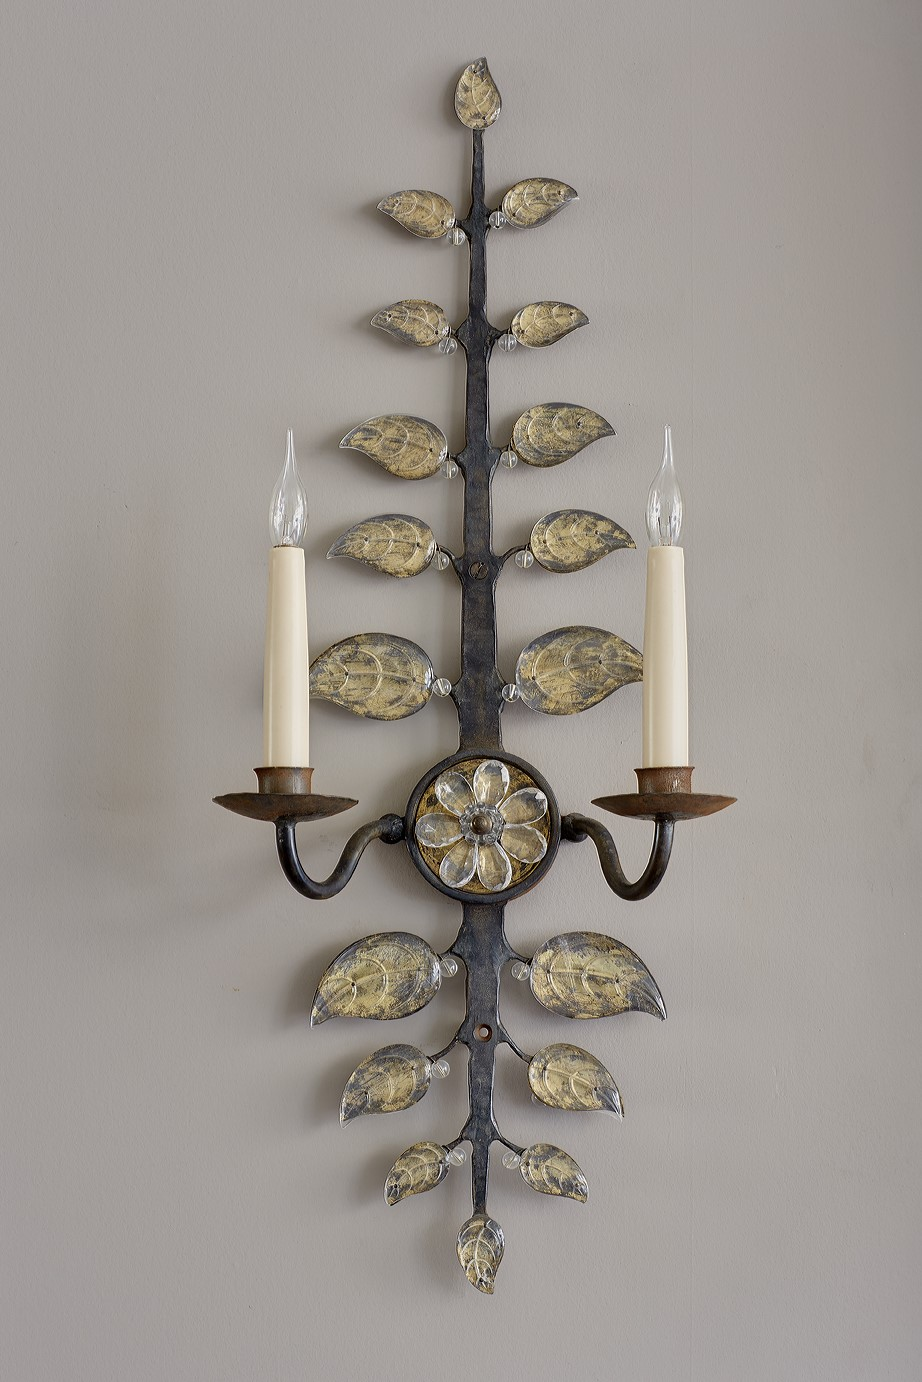 Wall appliques with clear glass leaves.